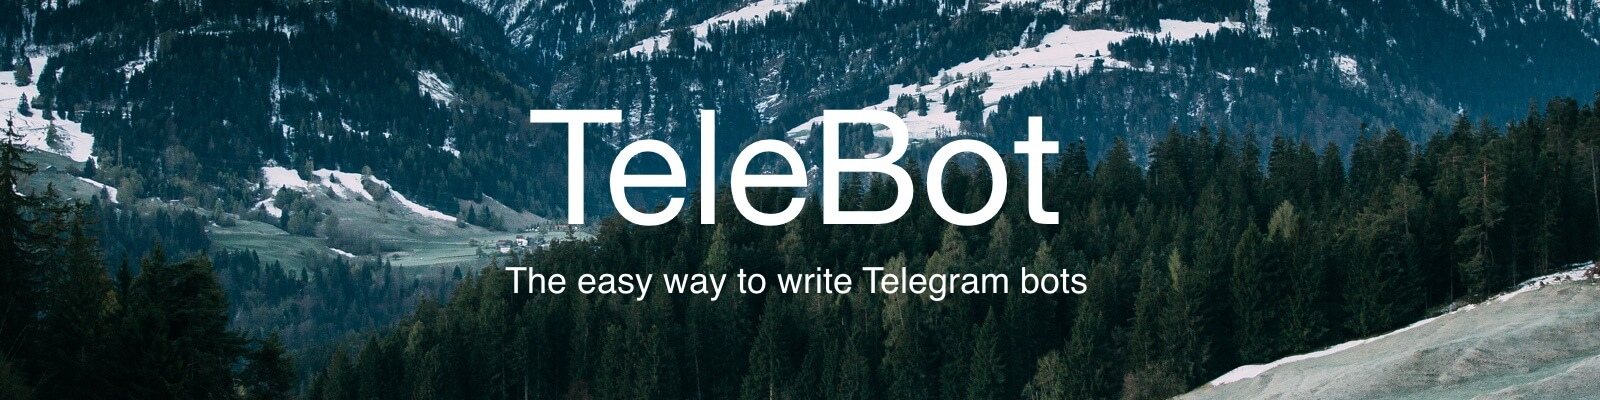 GitHub - mullwar/telebot: The easy way to write Telegram